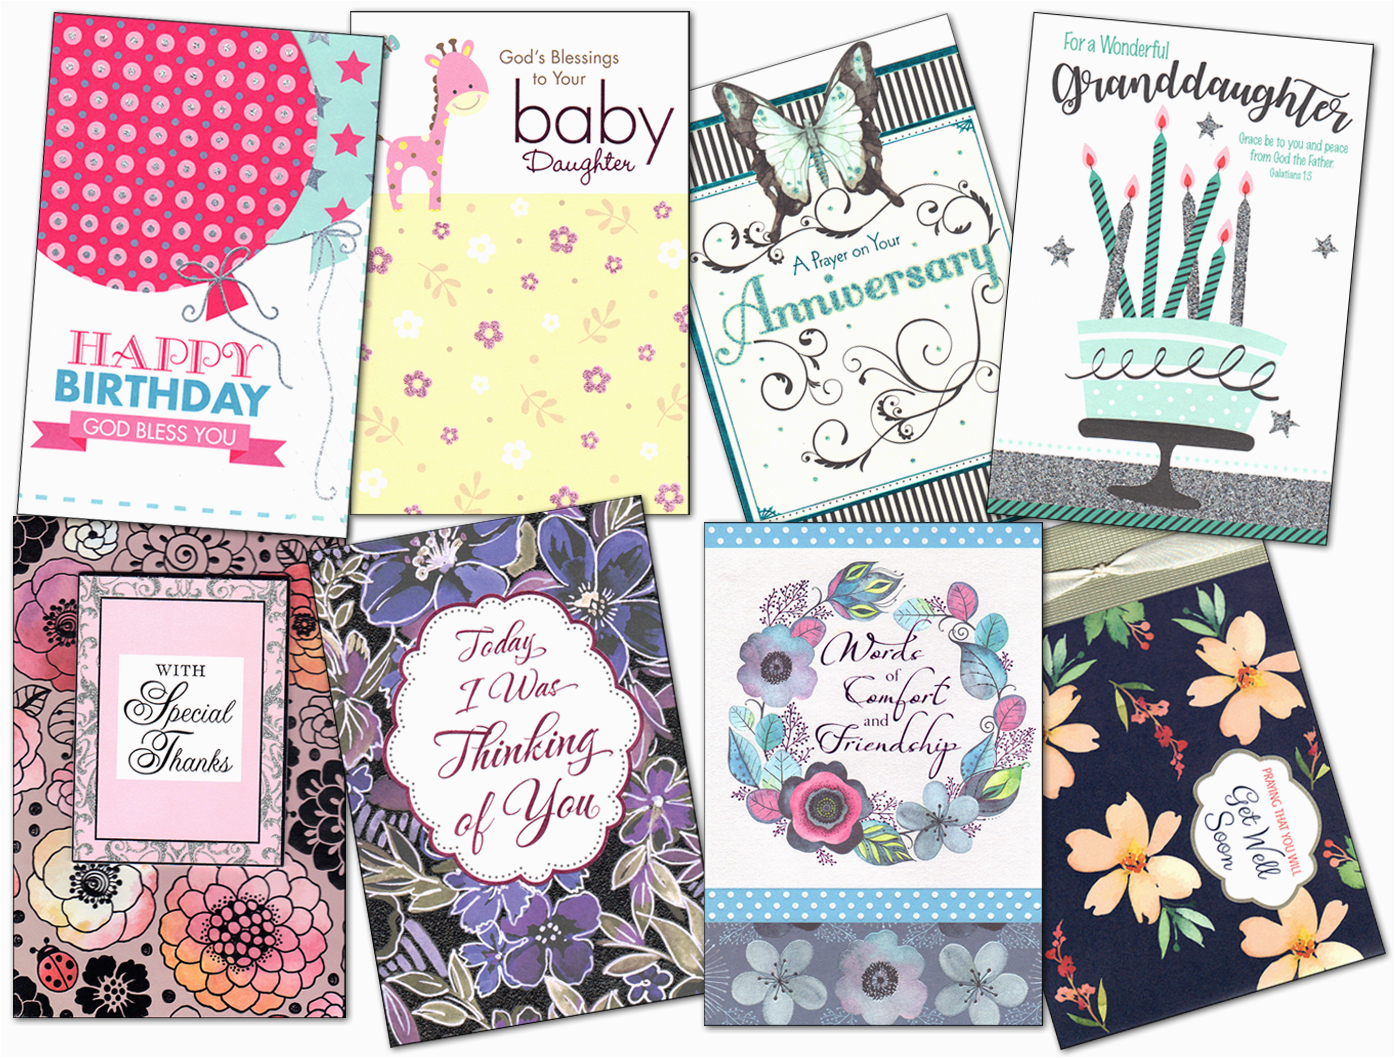 christian greeting cards new standards